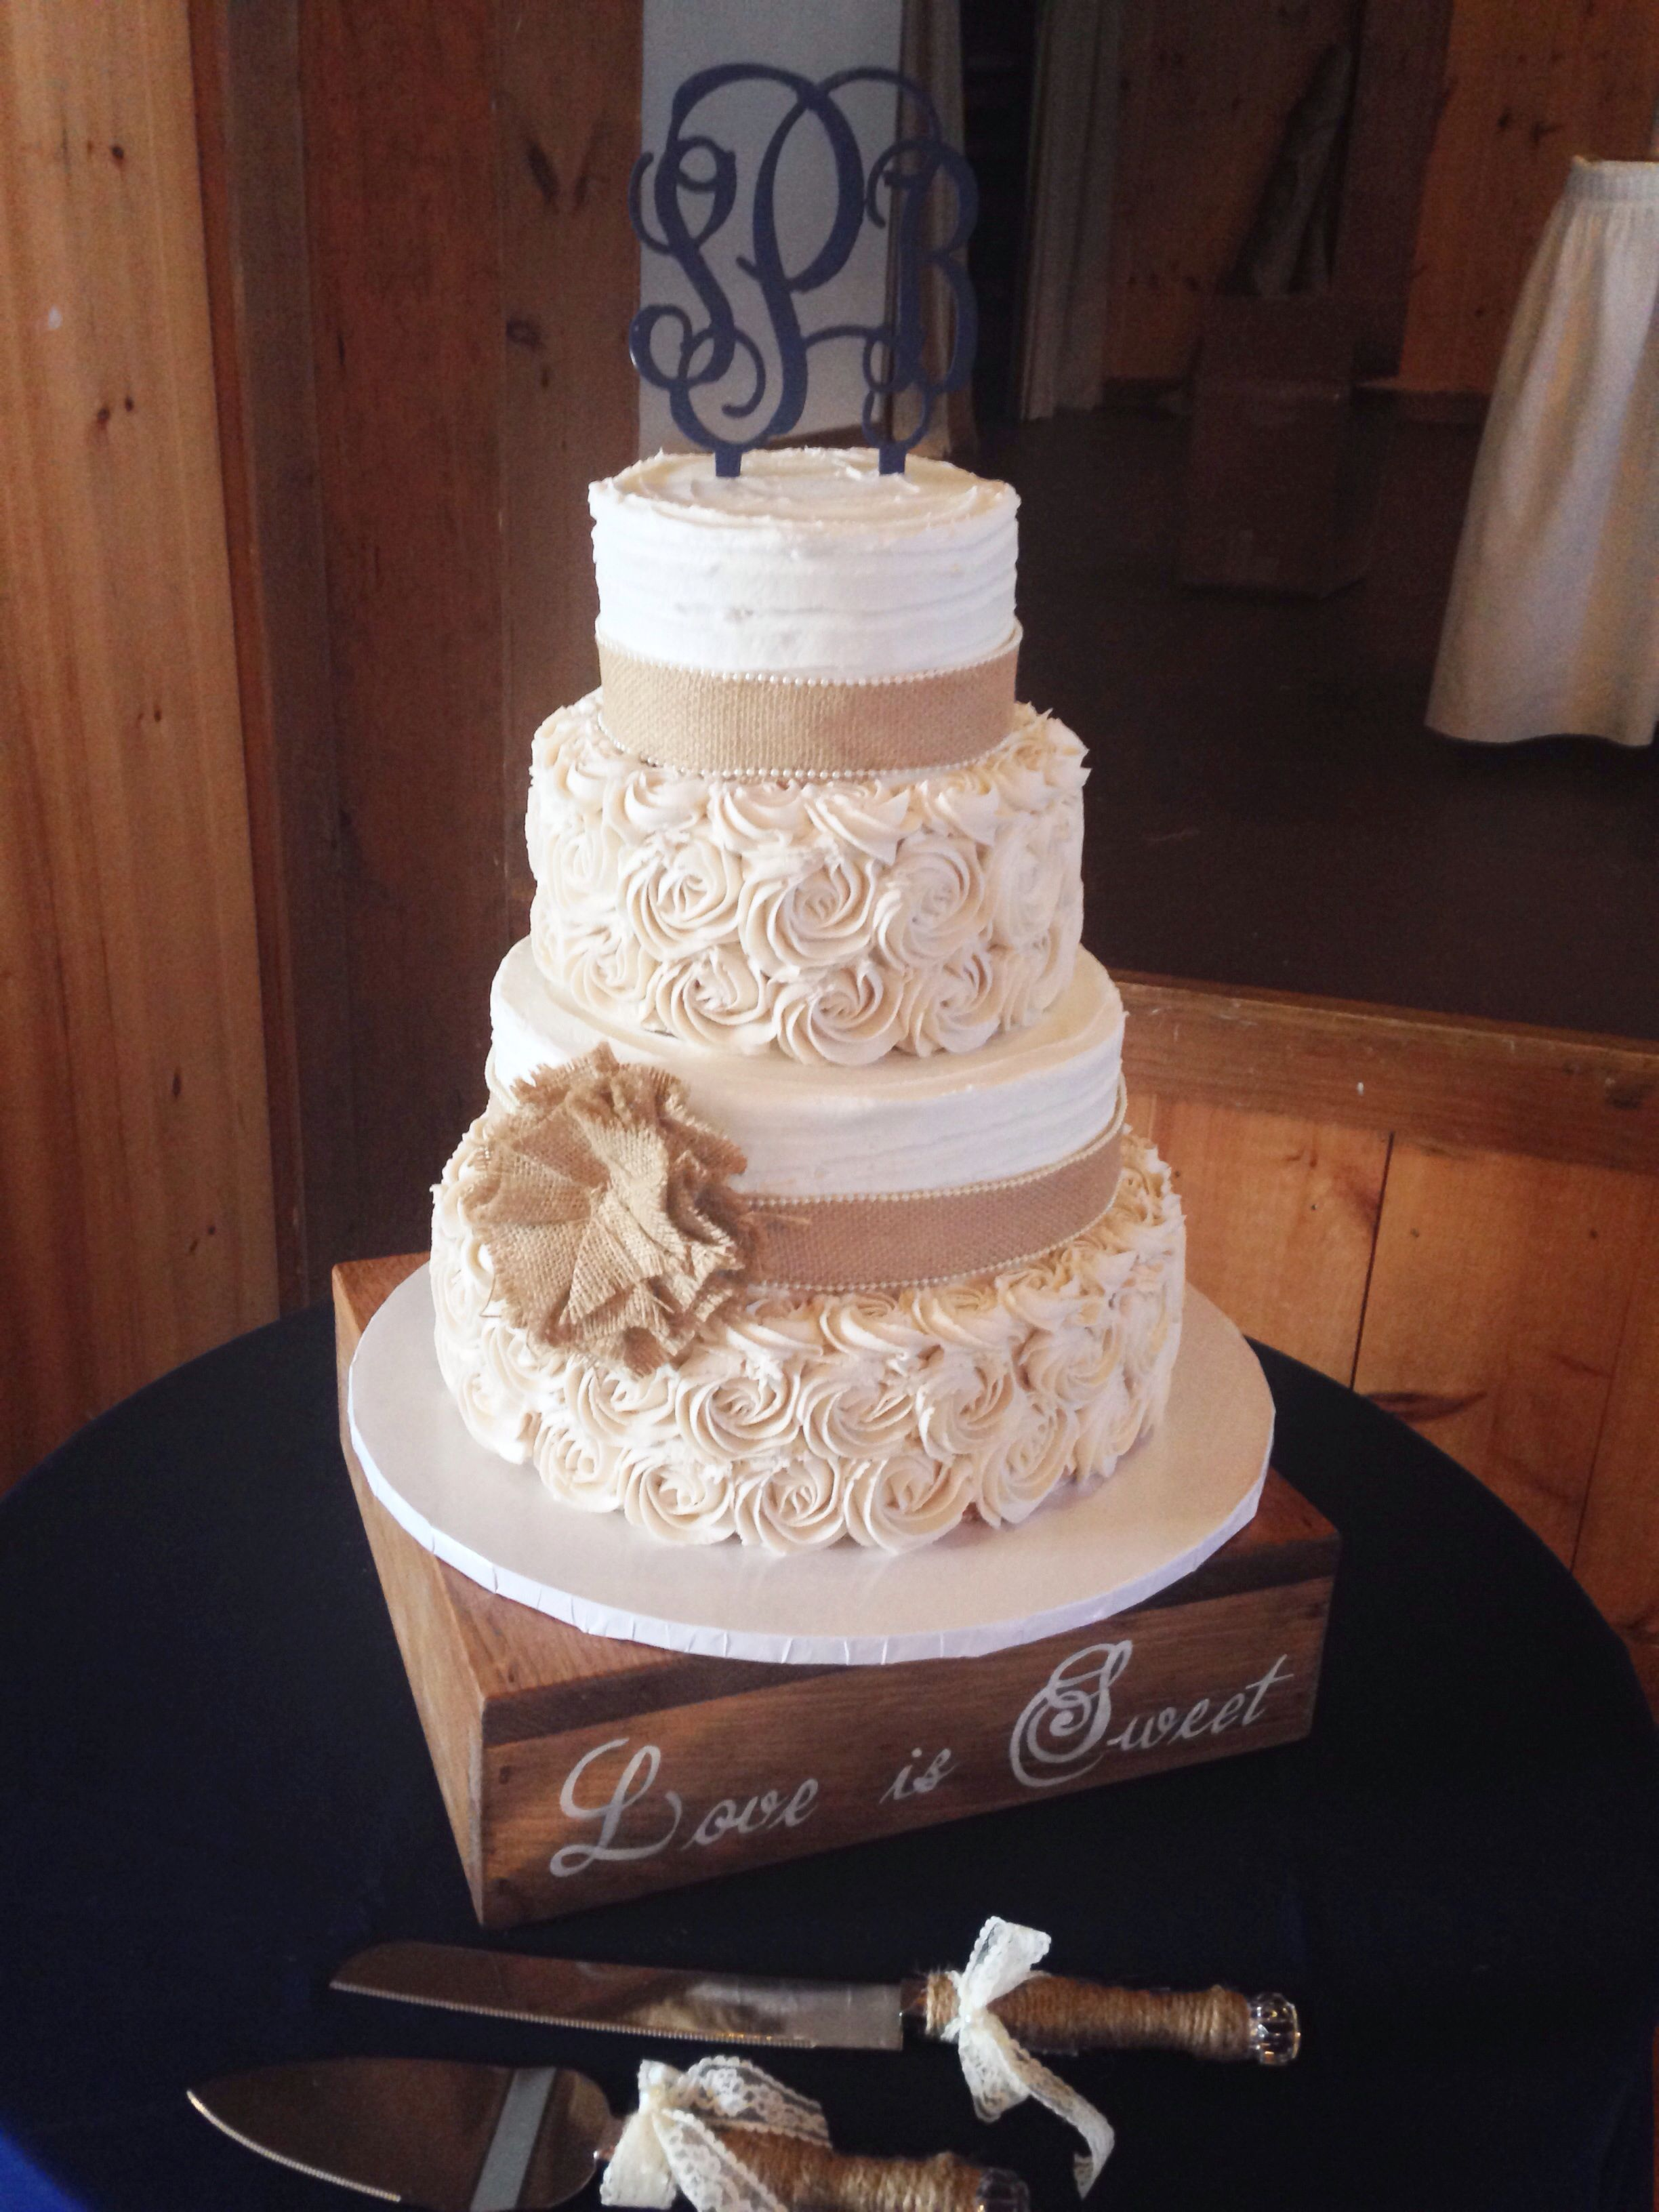 Wedding Cake Ideas For Summer Wedding : Rustic Wedding Cake with Burlap and Buttercream Rosettes ...